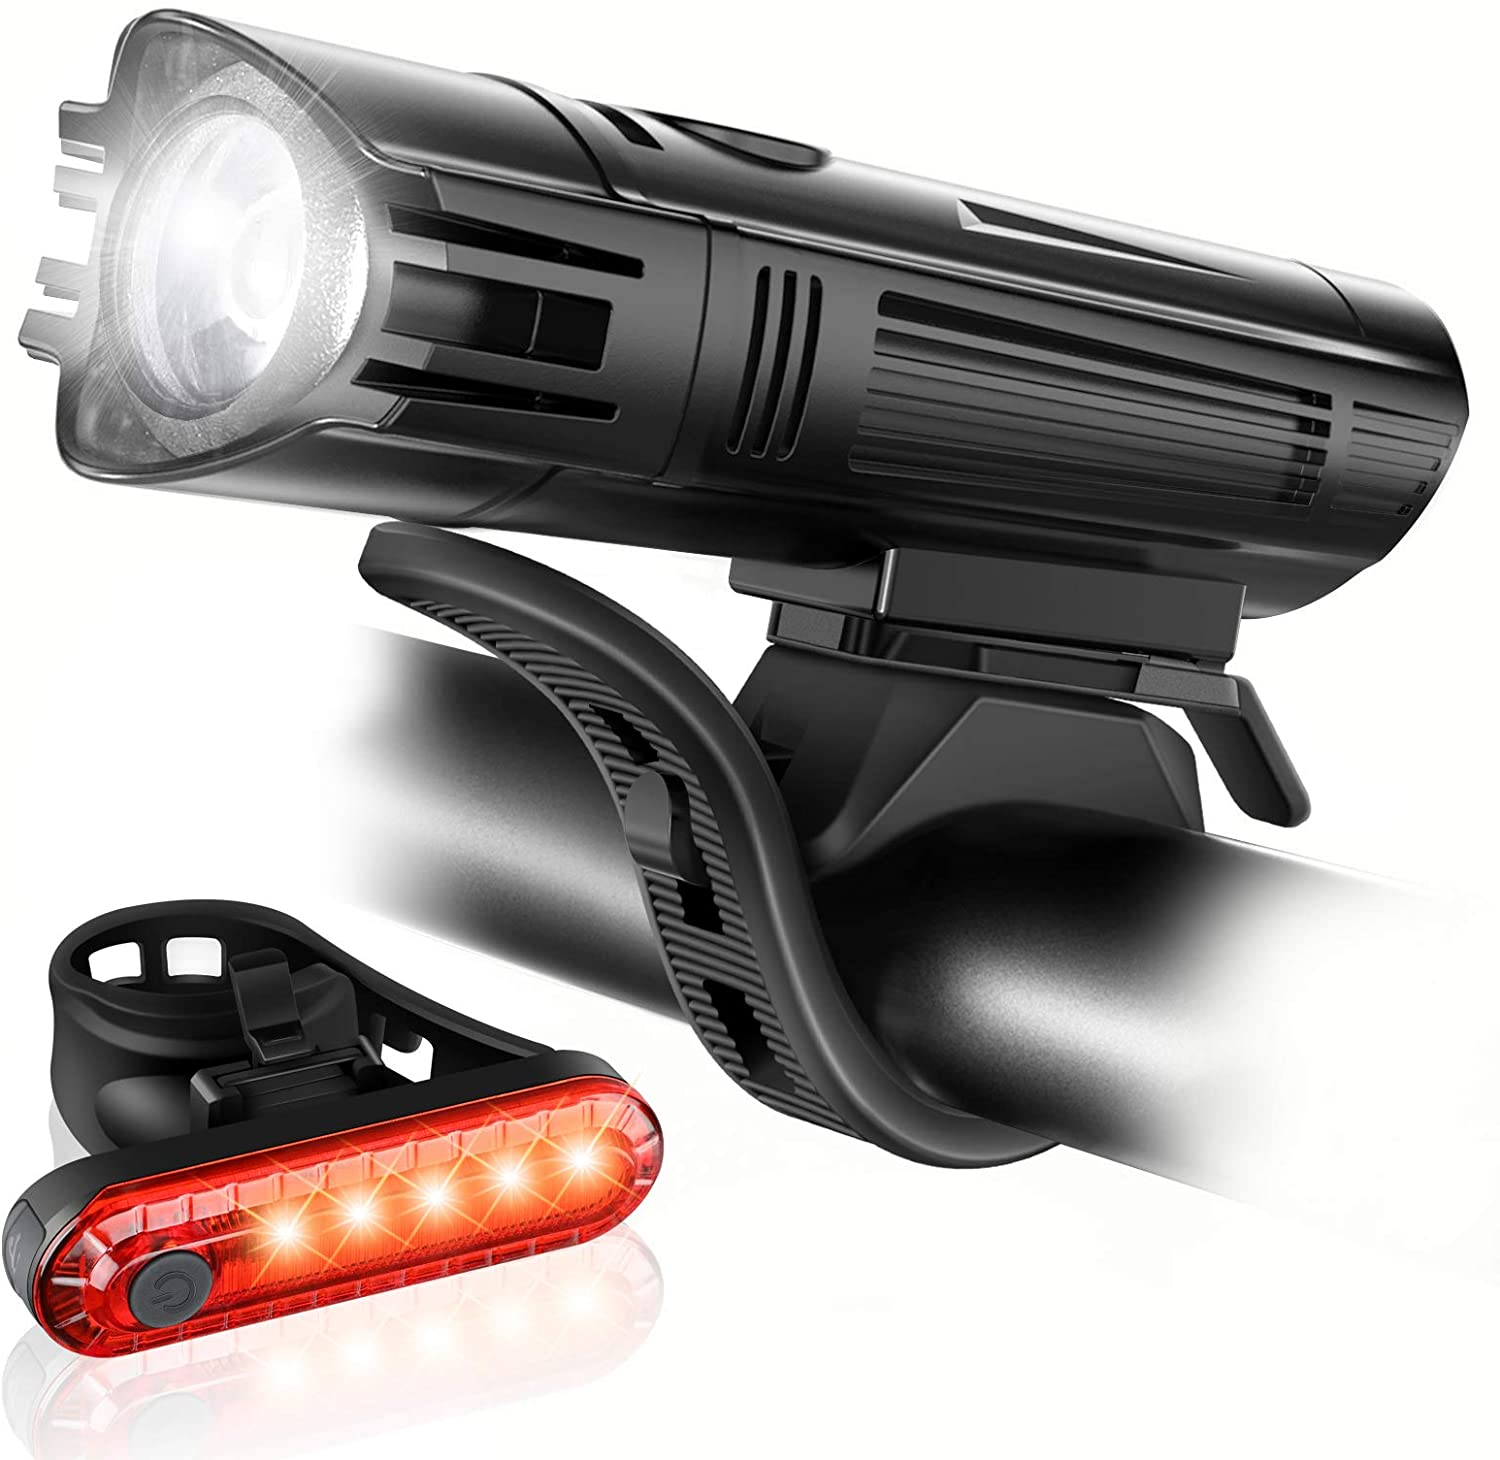 USB Rechargeable LED Bicycle Headlight Bike Head Light Front Rear Lamp Cycling D